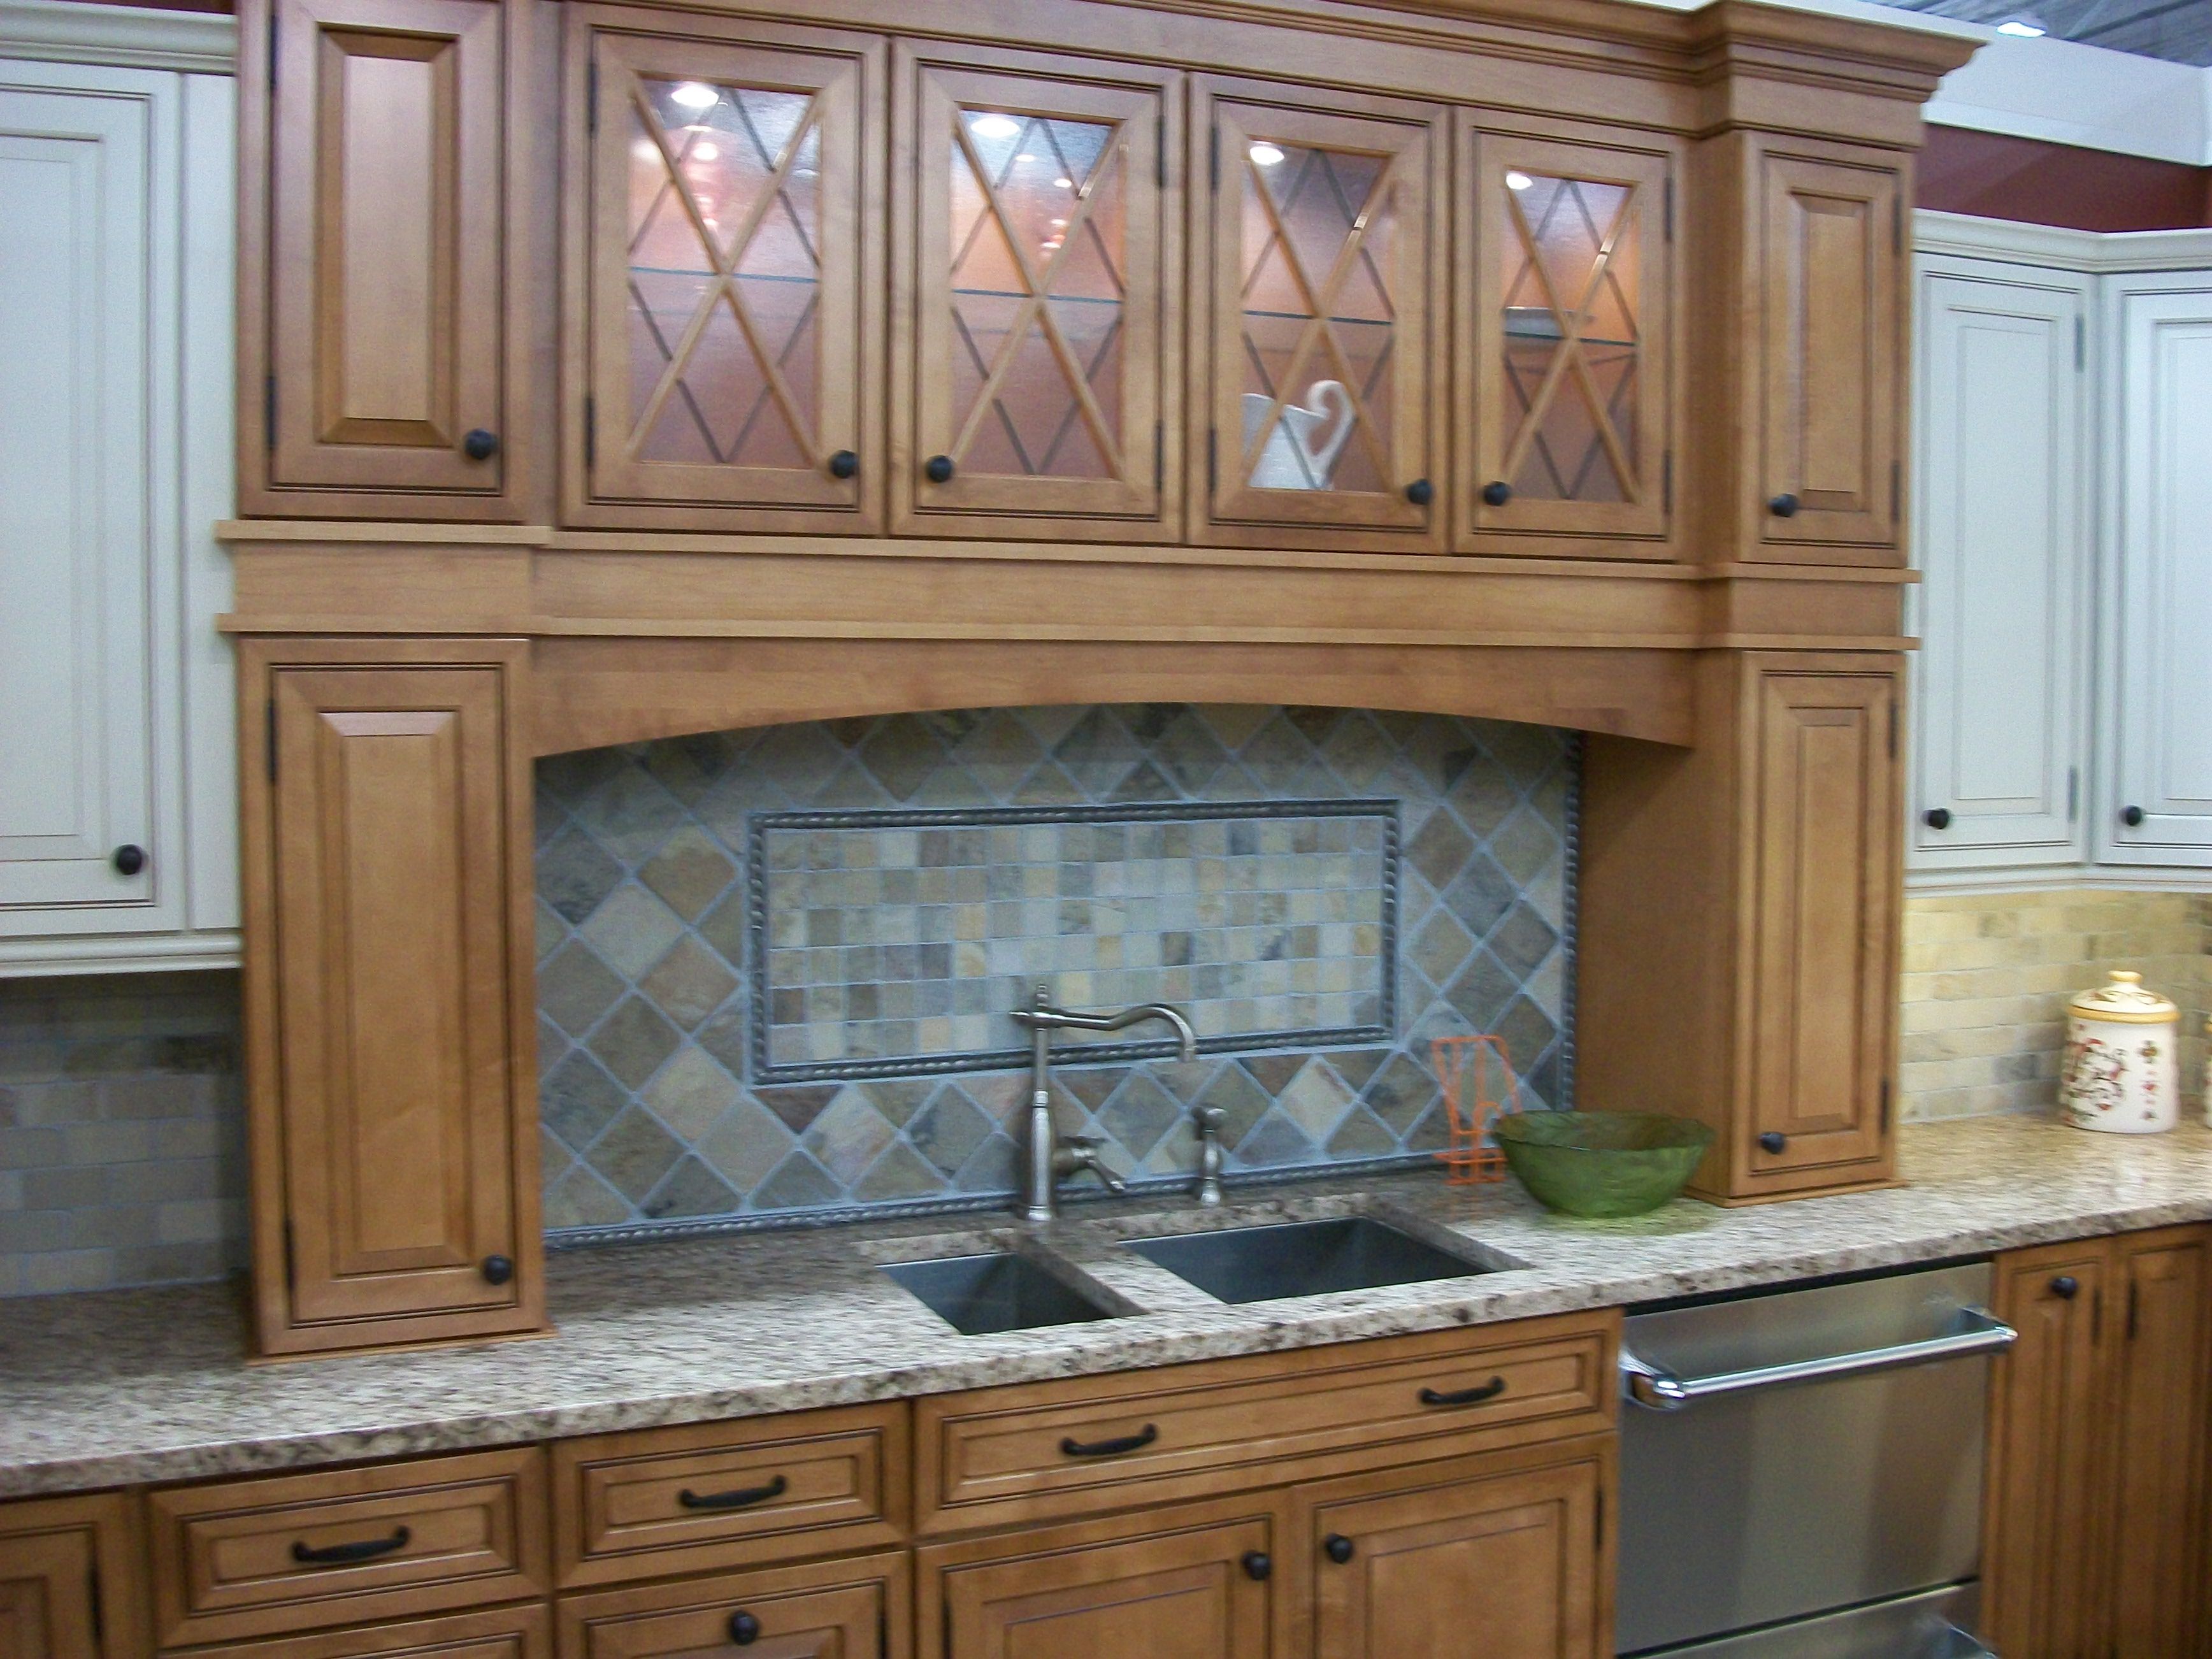 Kitchen Cabinet Decorative End Panels